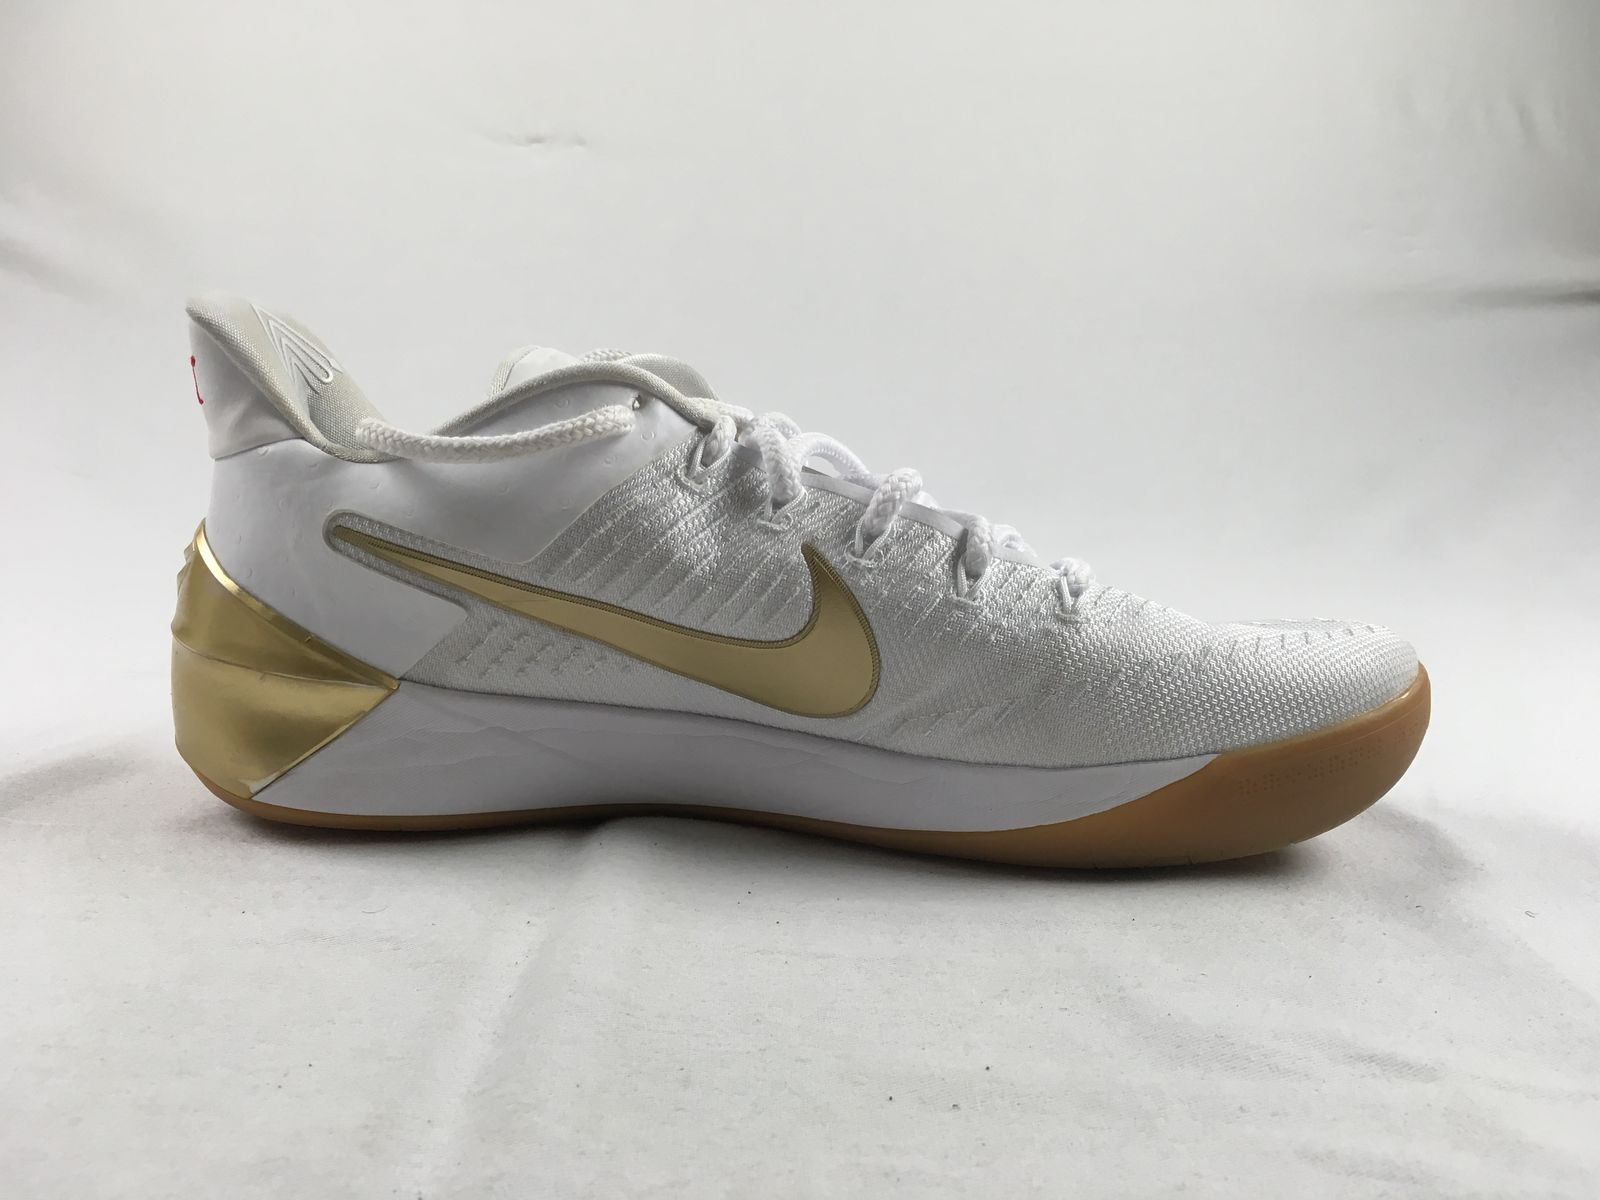 896a53ff02f Nike Kobe A.D. Big Stage - Basketball Shoes (Men s 13.5) Used